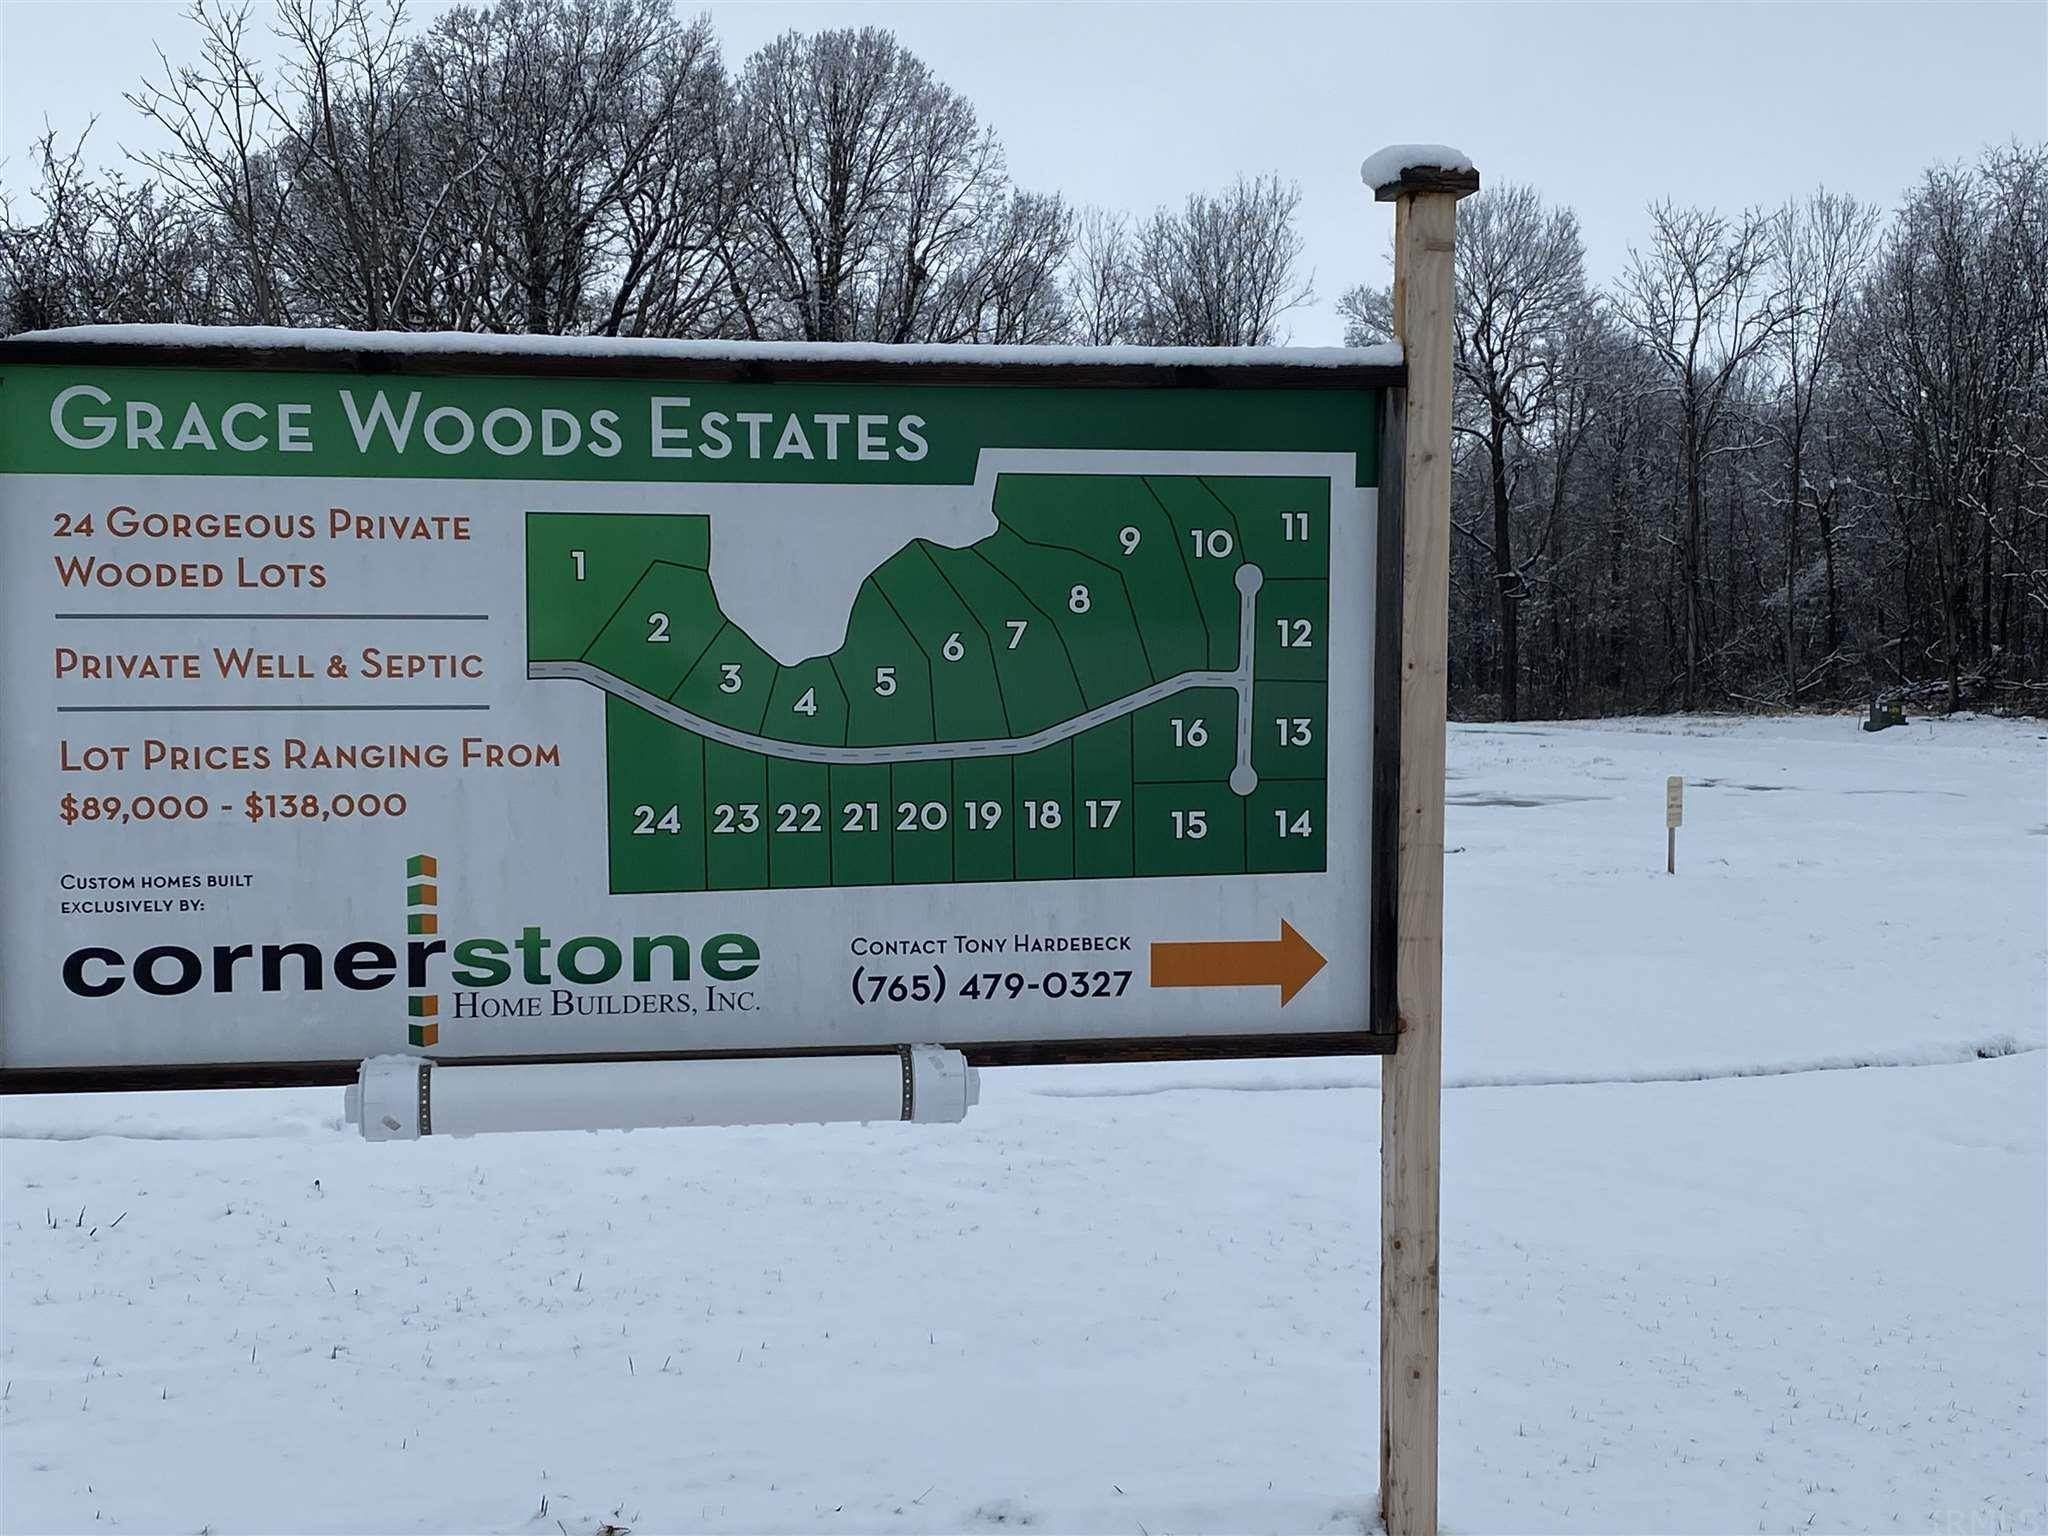 Residential Lots & Land for Sale at 9120 Herring Lane Battle Ground, Indiana 47920 United States